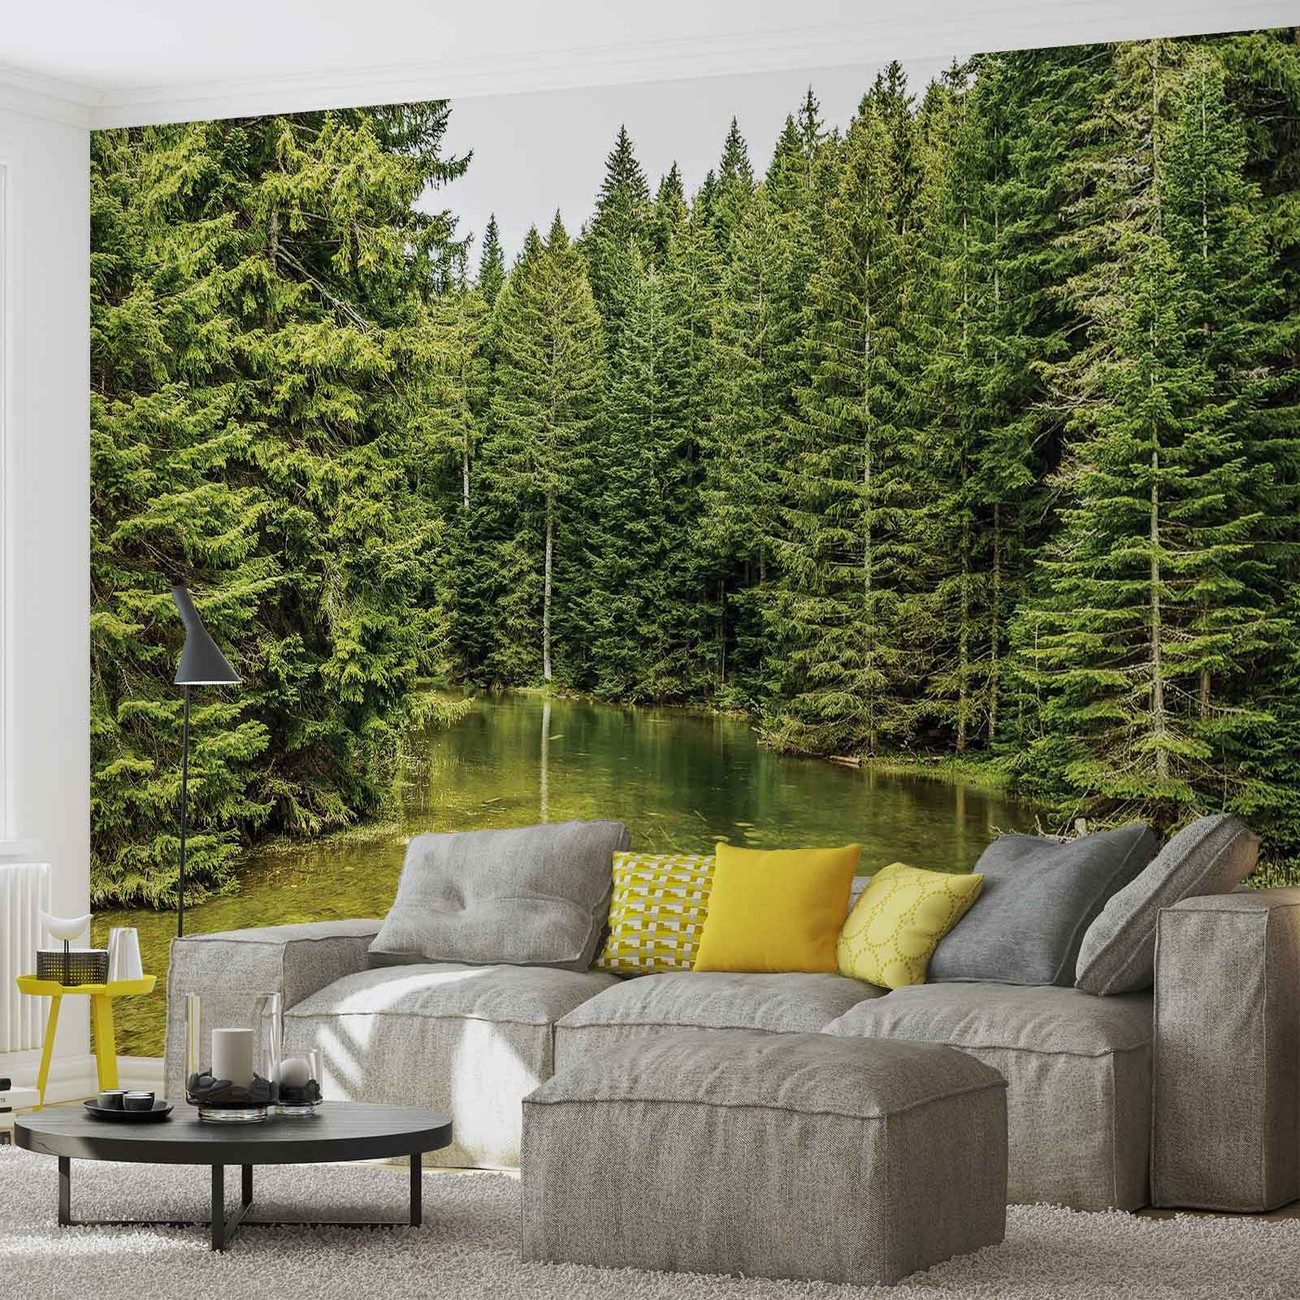 River forest nature wall paper mural buy at europosters for Mural nature